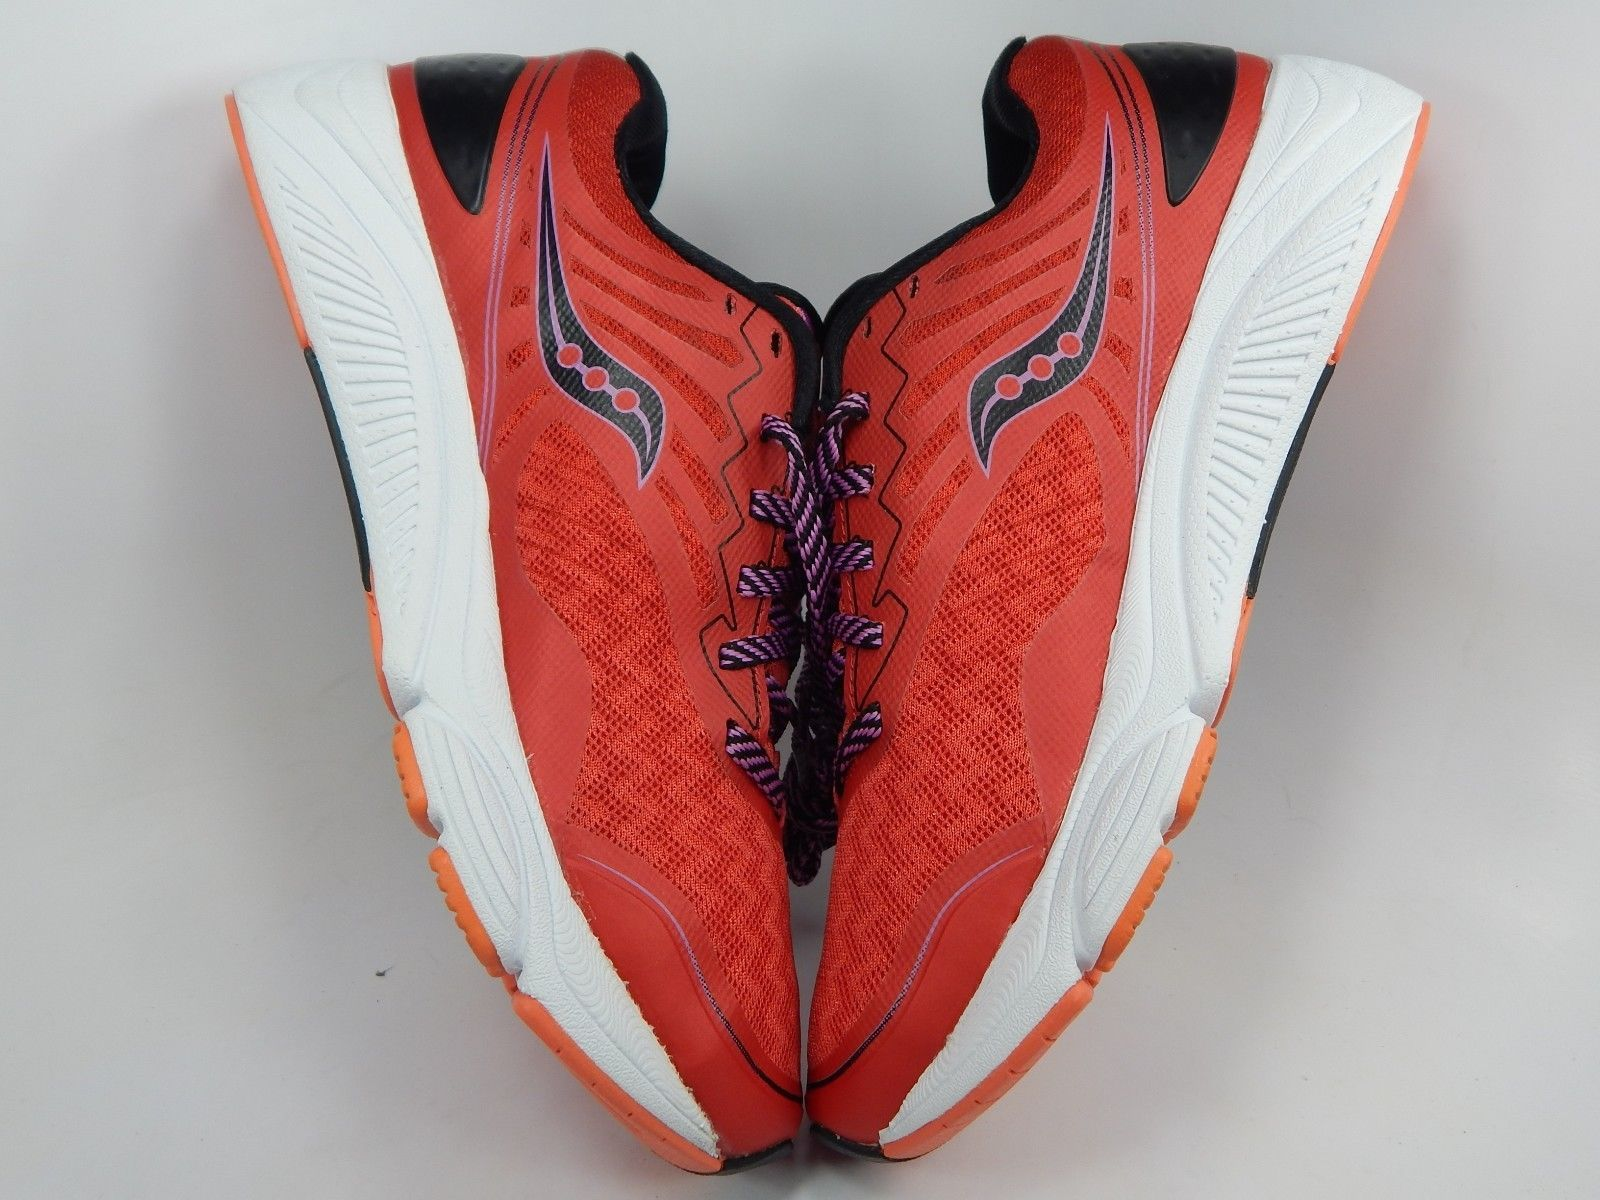 Saucony Breakthru 2 Women's Running Shoes Size US 8 M (B) EU 39 Red S10304-1